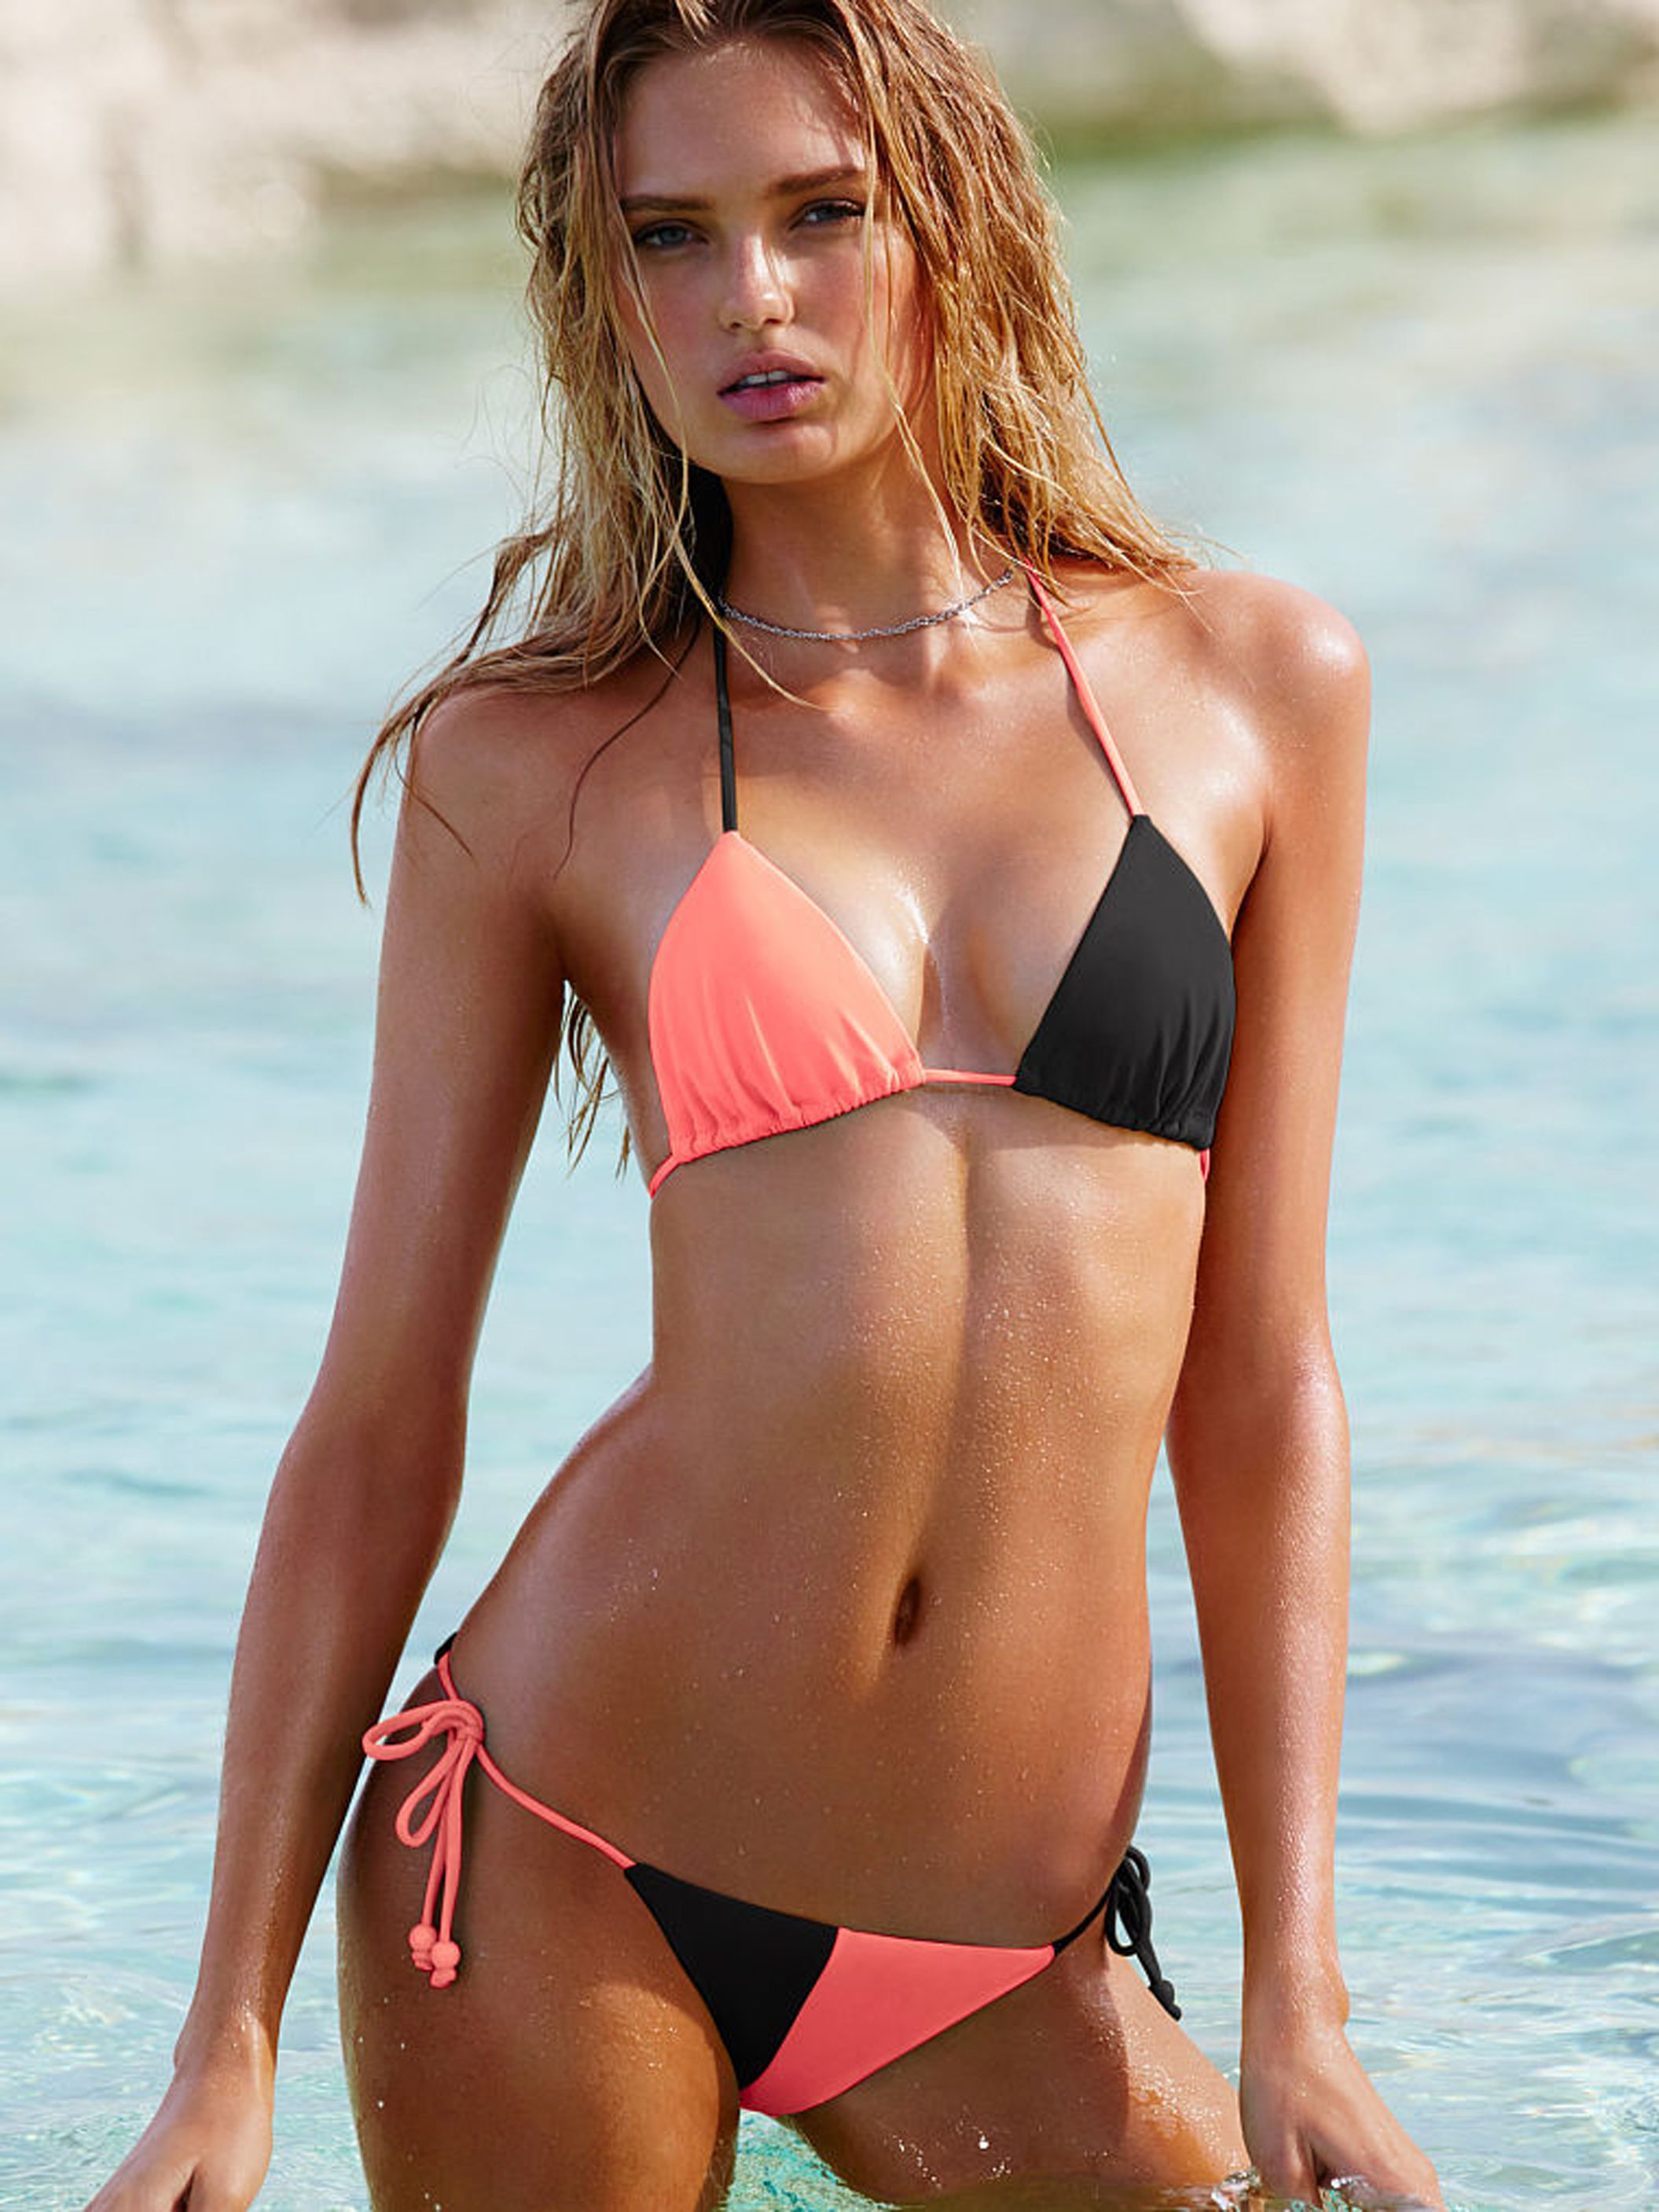 Romee Strijd Bikini Photo...